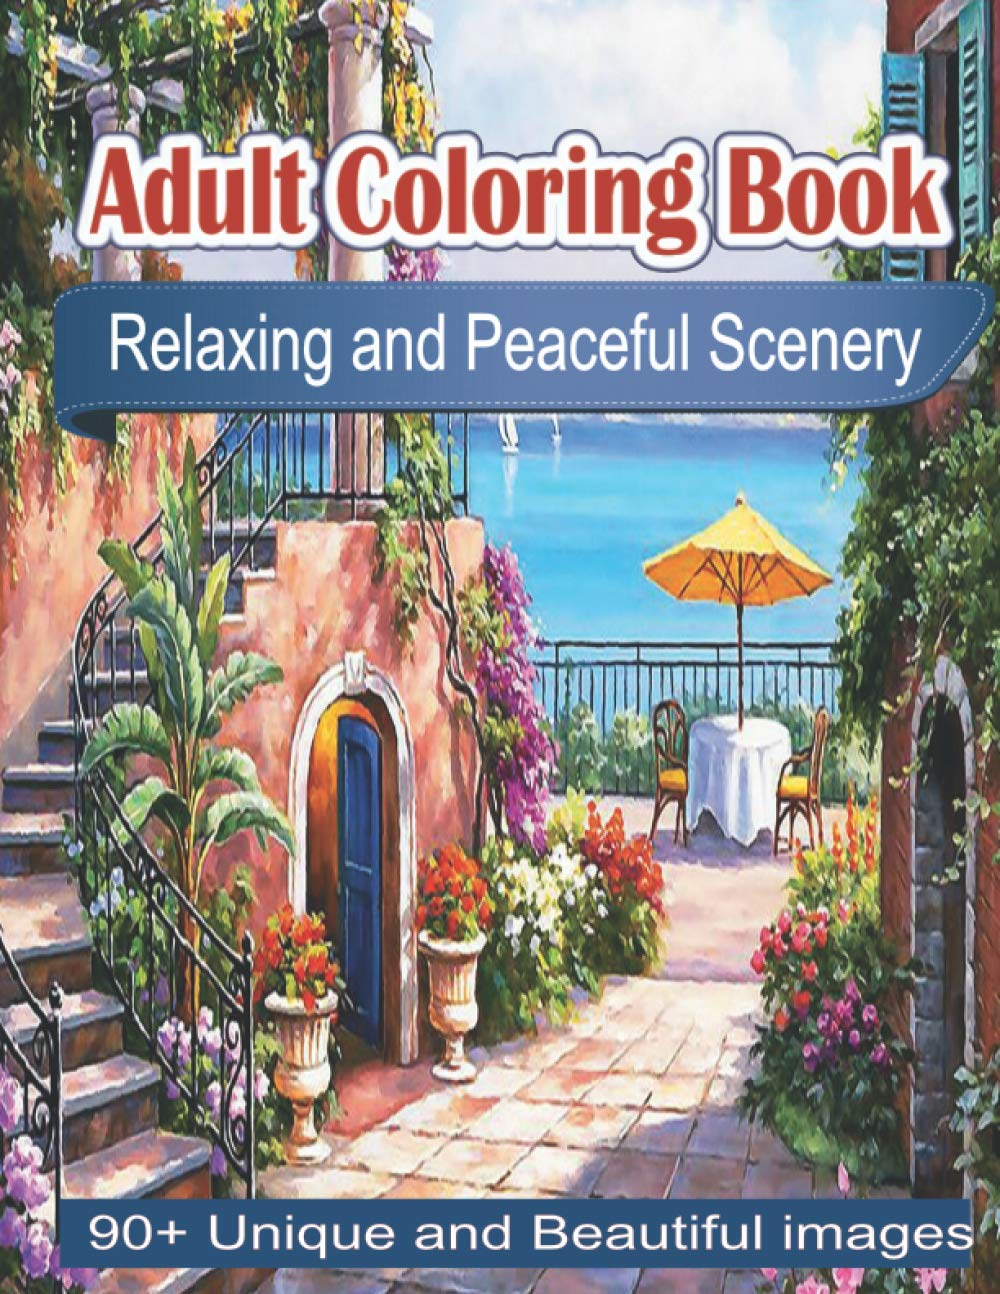 Adult Coloring Book Relaxing And Peaceful Scenery Coloring Books For Adults Featuring Fun And Easy Coloring Pages With Beautiful Landscape Lovely House Beautiful Garden And Many More Invest Smart 9798644772230 Amazon Com